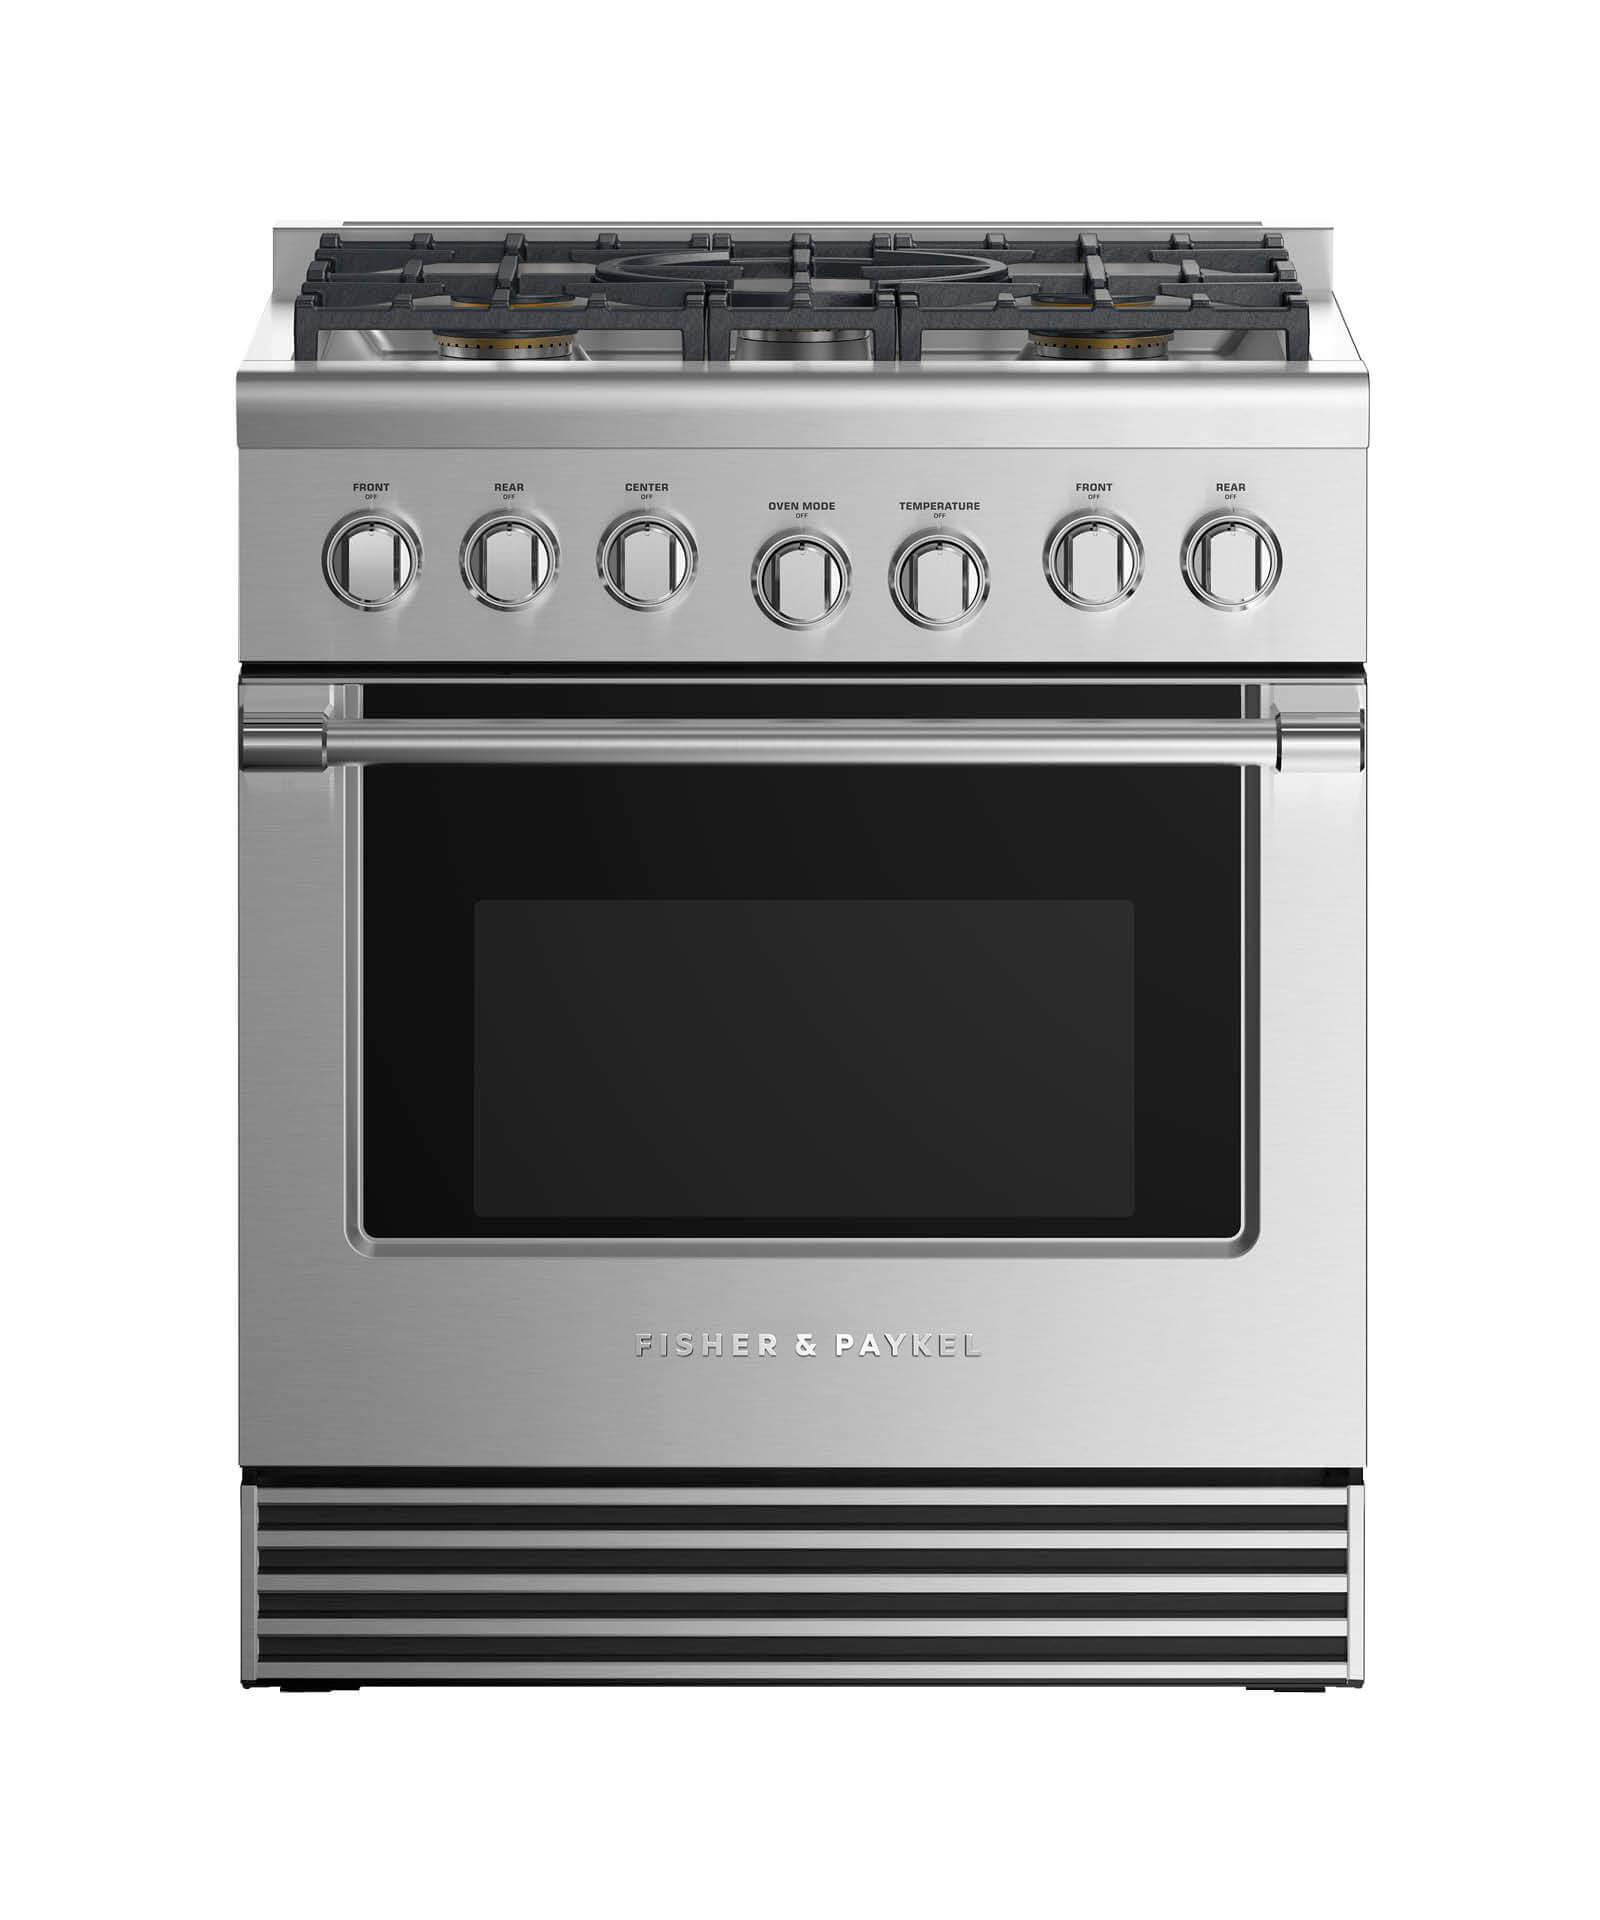 "Fisher and Paykel DISPLAY MODEL--Dual Fuel Range 30"", 5 Burners"